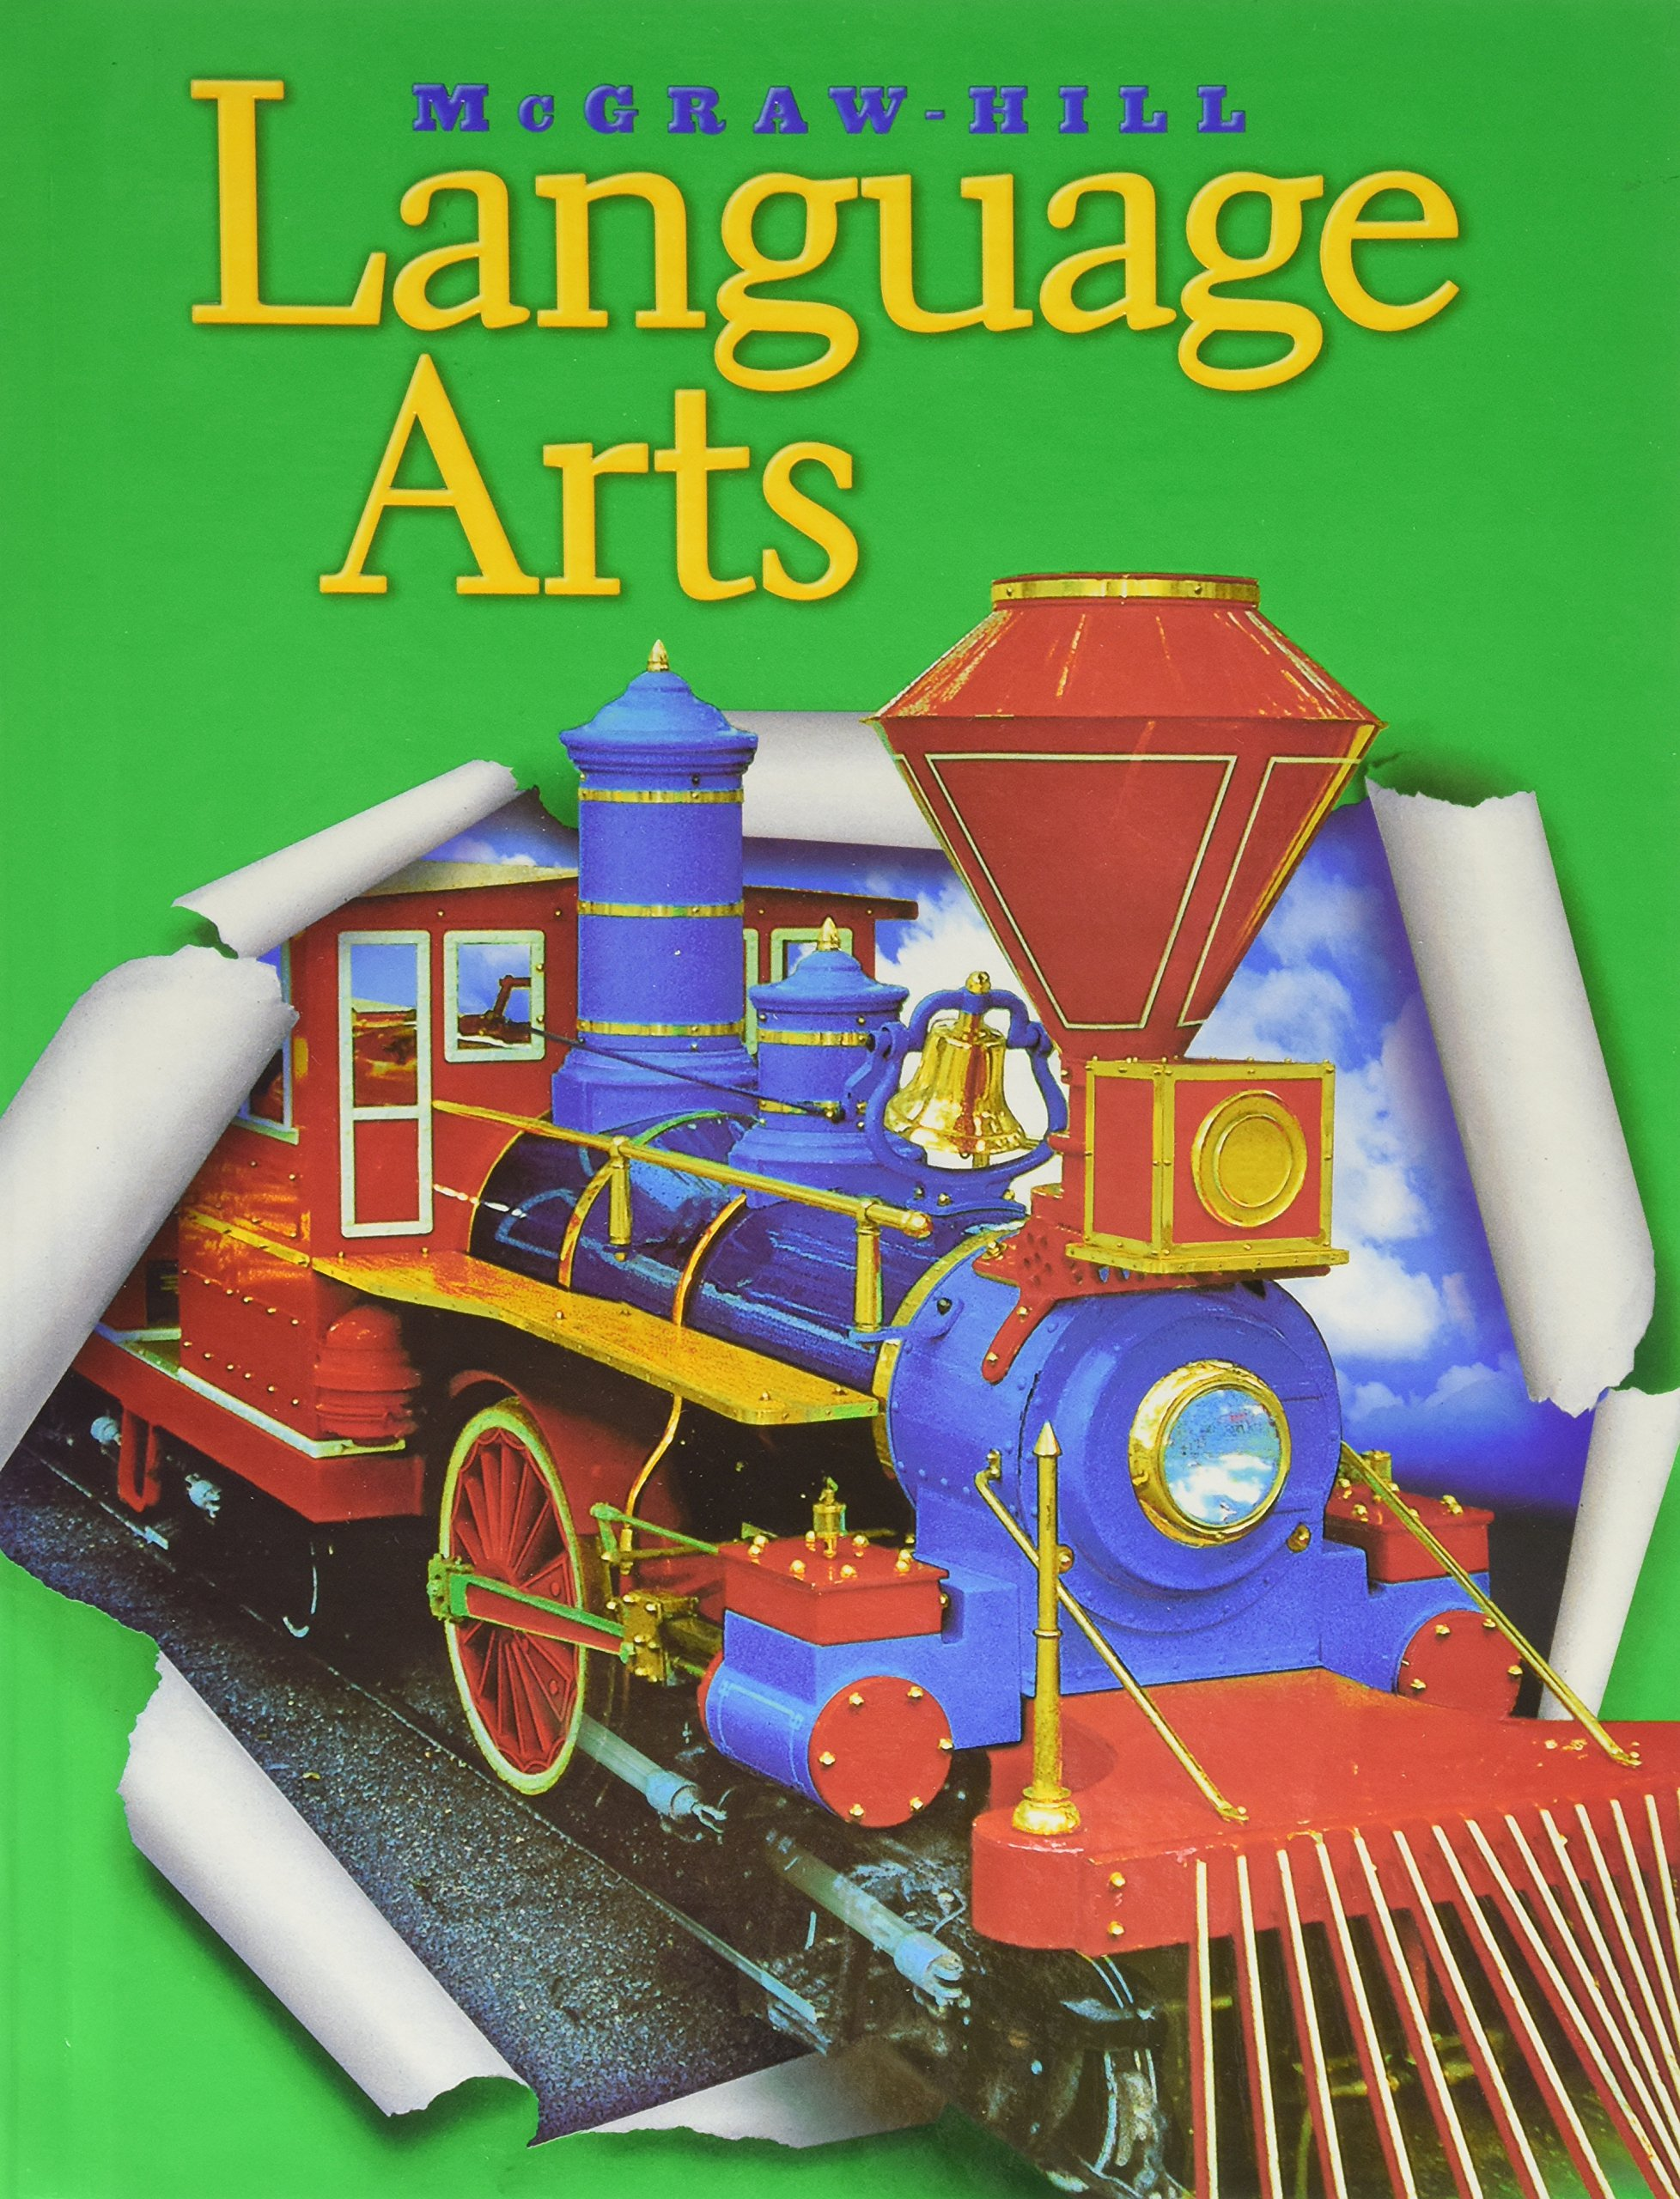 McGraw-Hill Language Arts Grade 3 by Macmillan/McGraw-Hill School